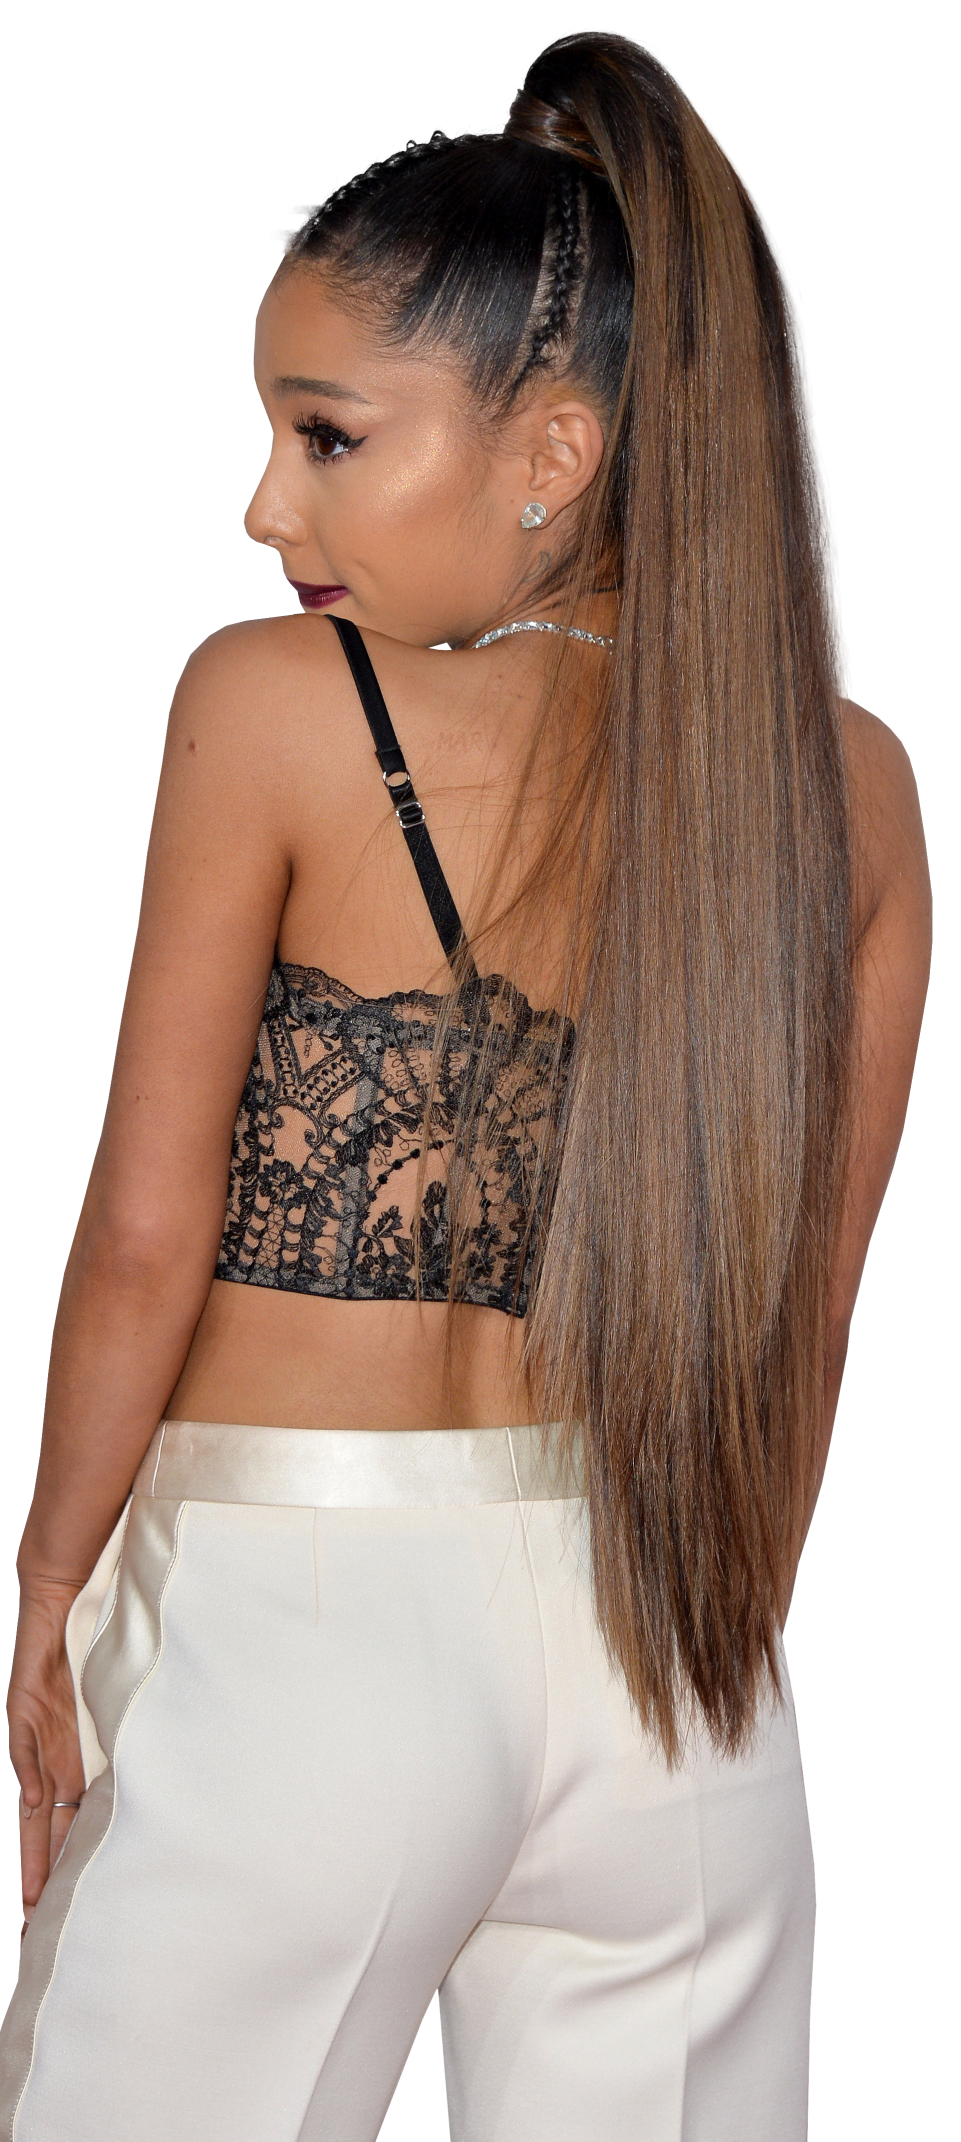 Ariana Grande in white trousers PNG Image